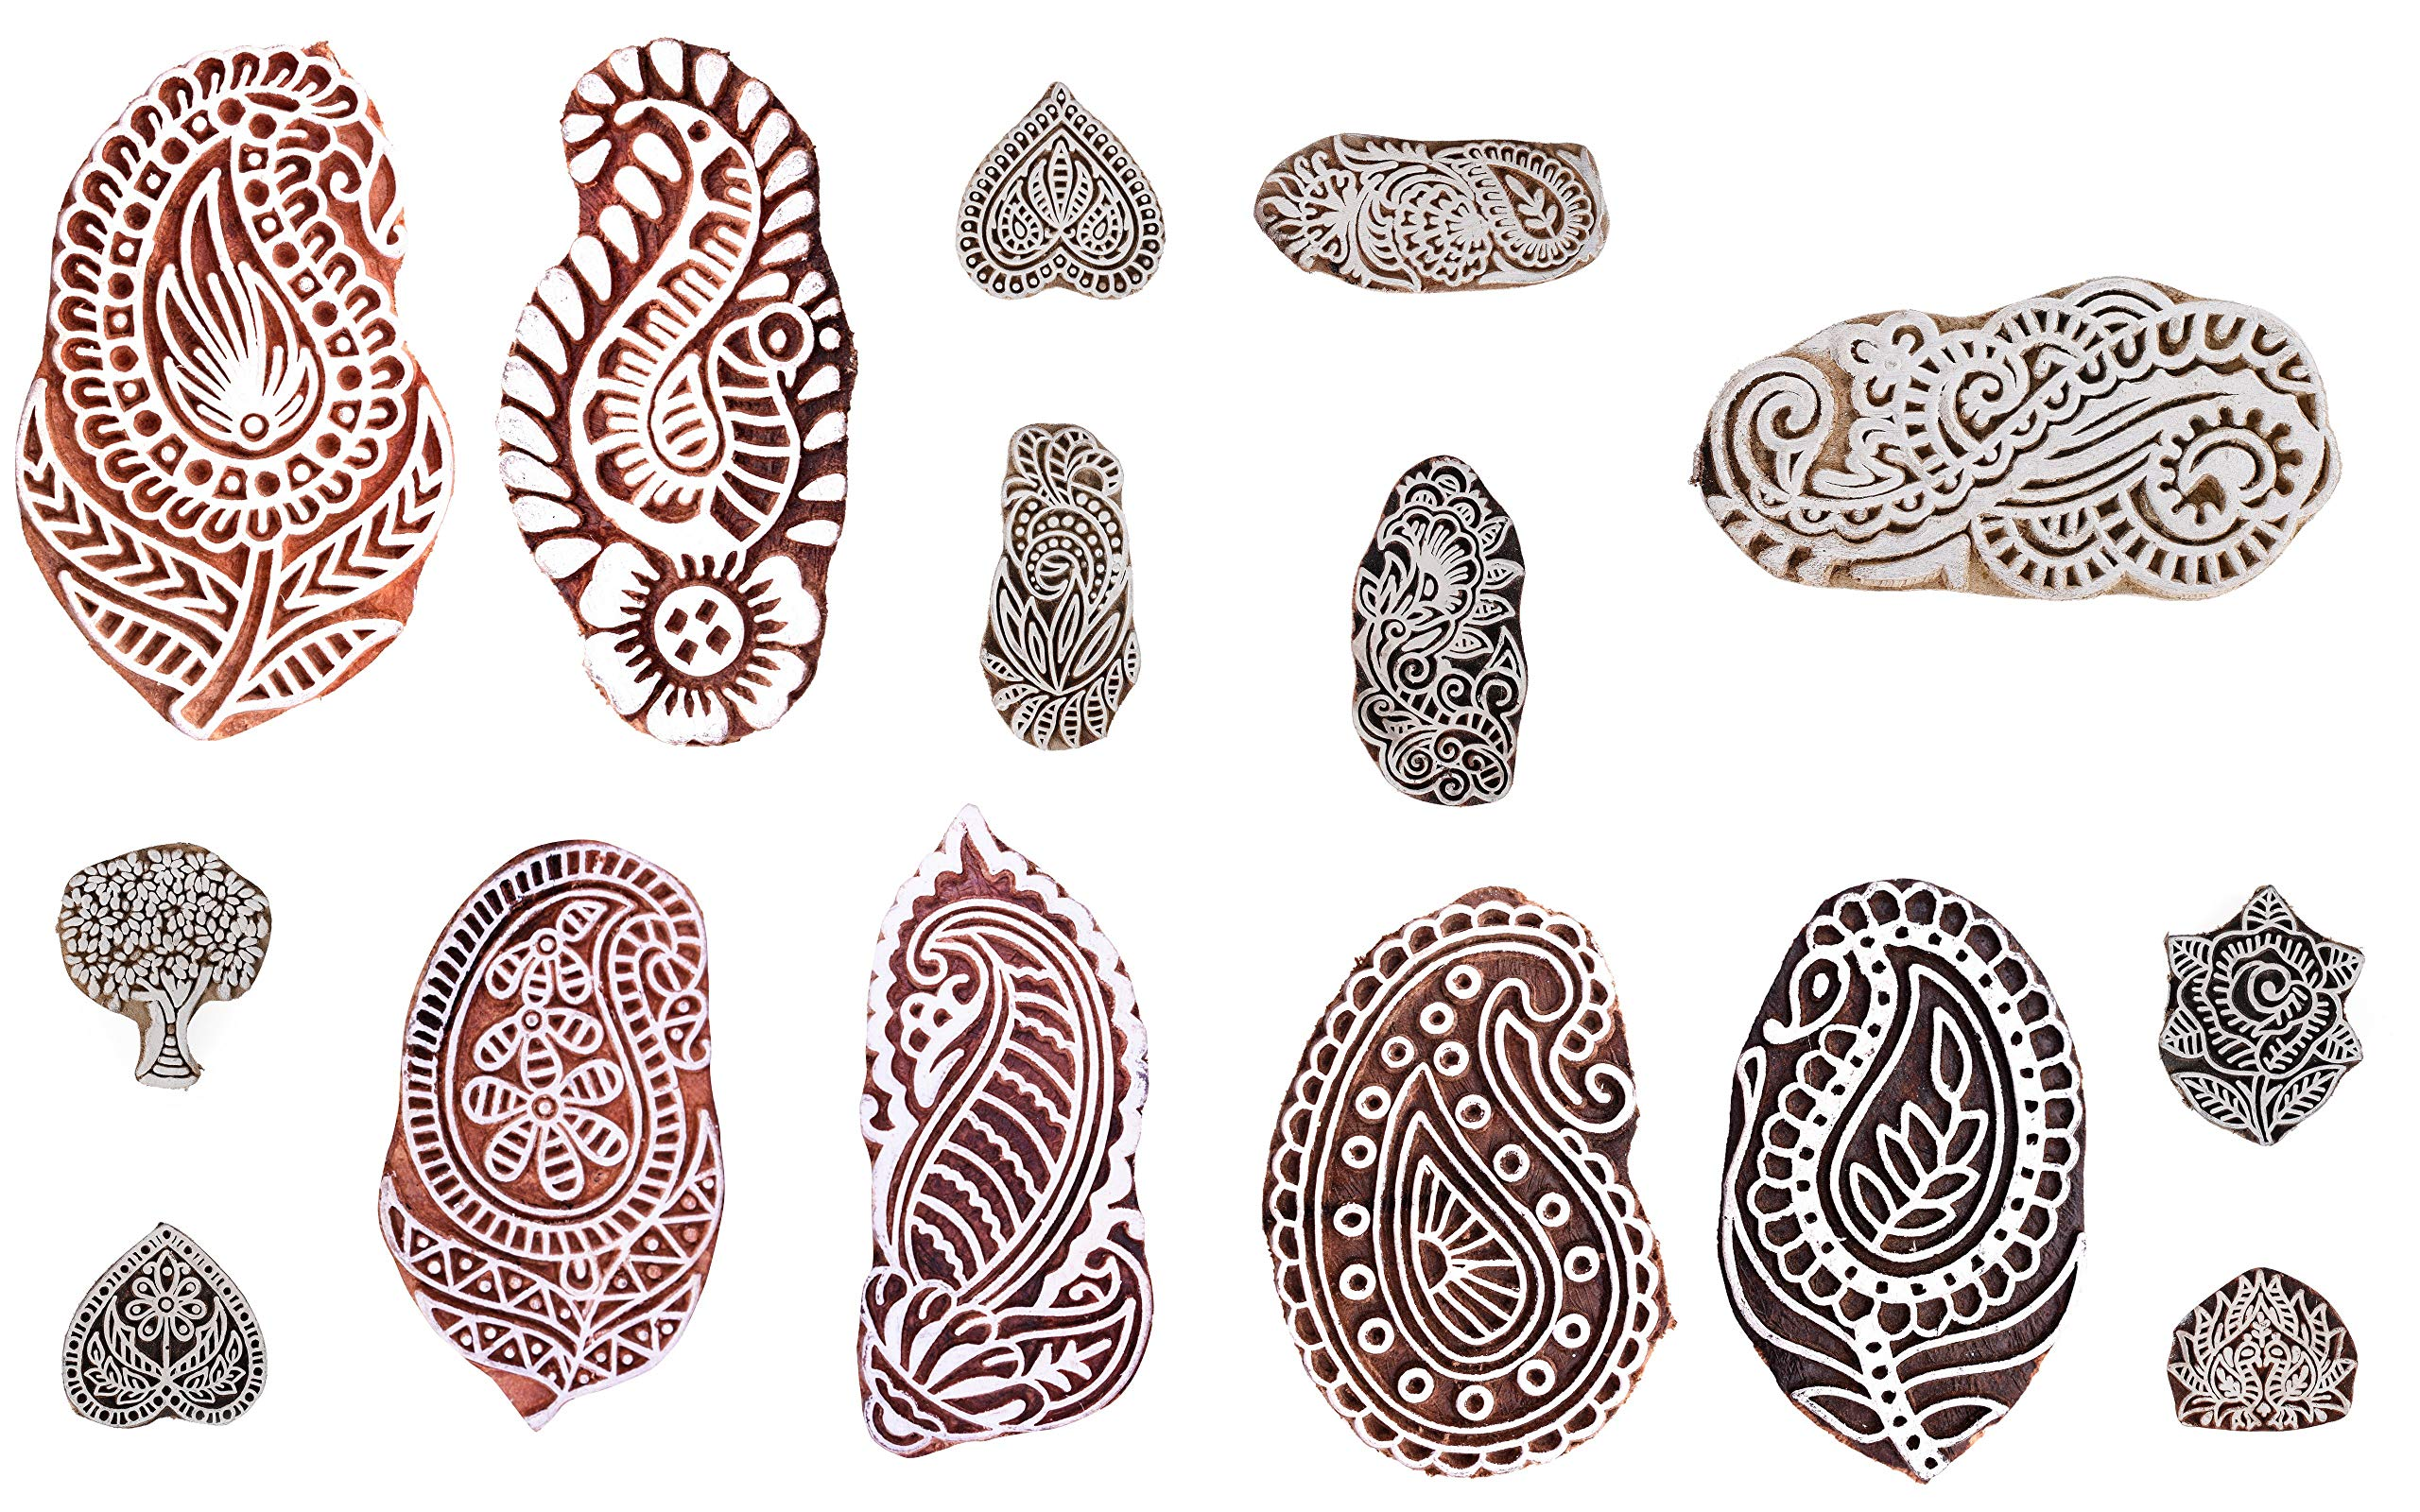 Handicraft-Palace Floral Paisley Designs Wooden Blocks Indian Hand Carved Printed Stamps Textile Hand Painting Wood Block Stamping (10 pc Set)